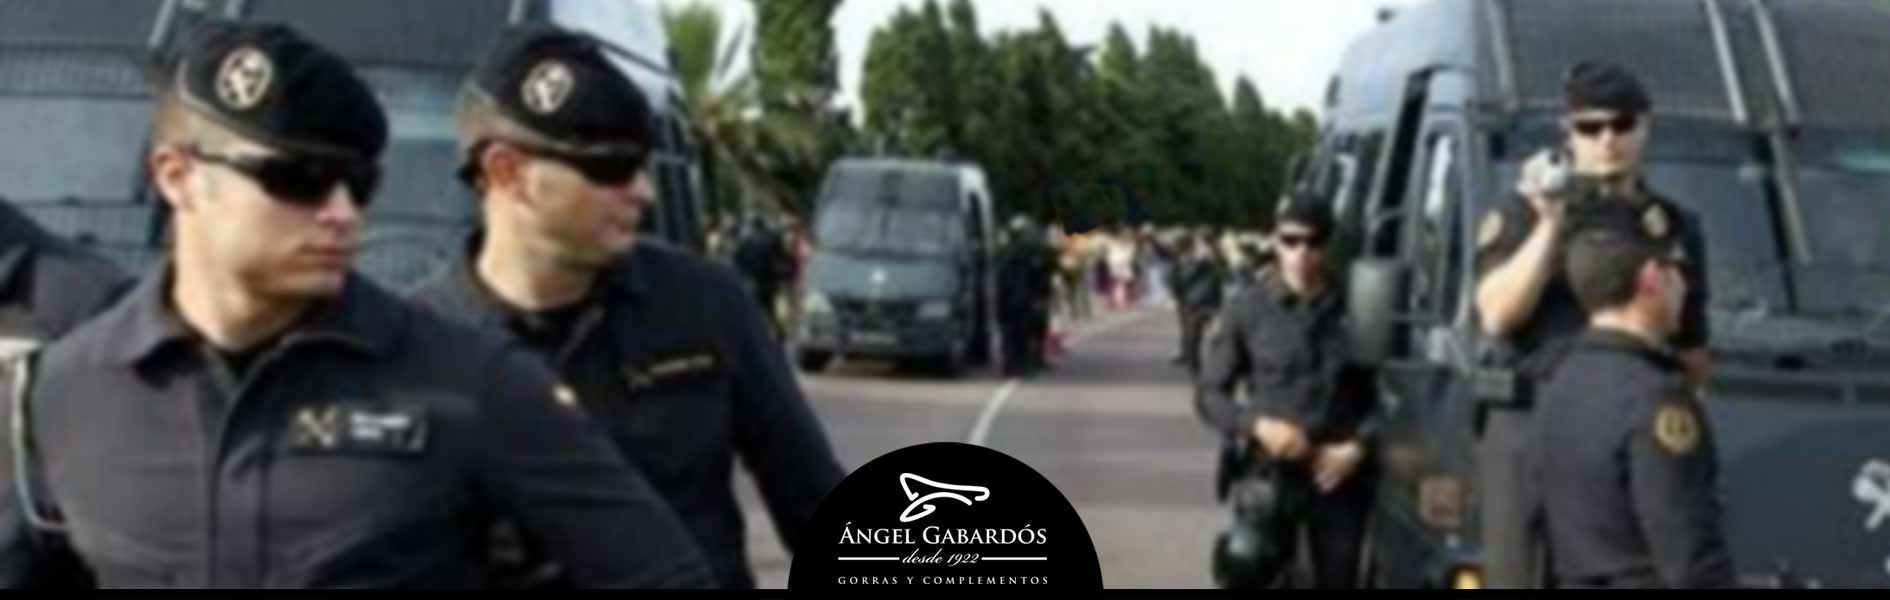 Boinas Guardia Civil ARS